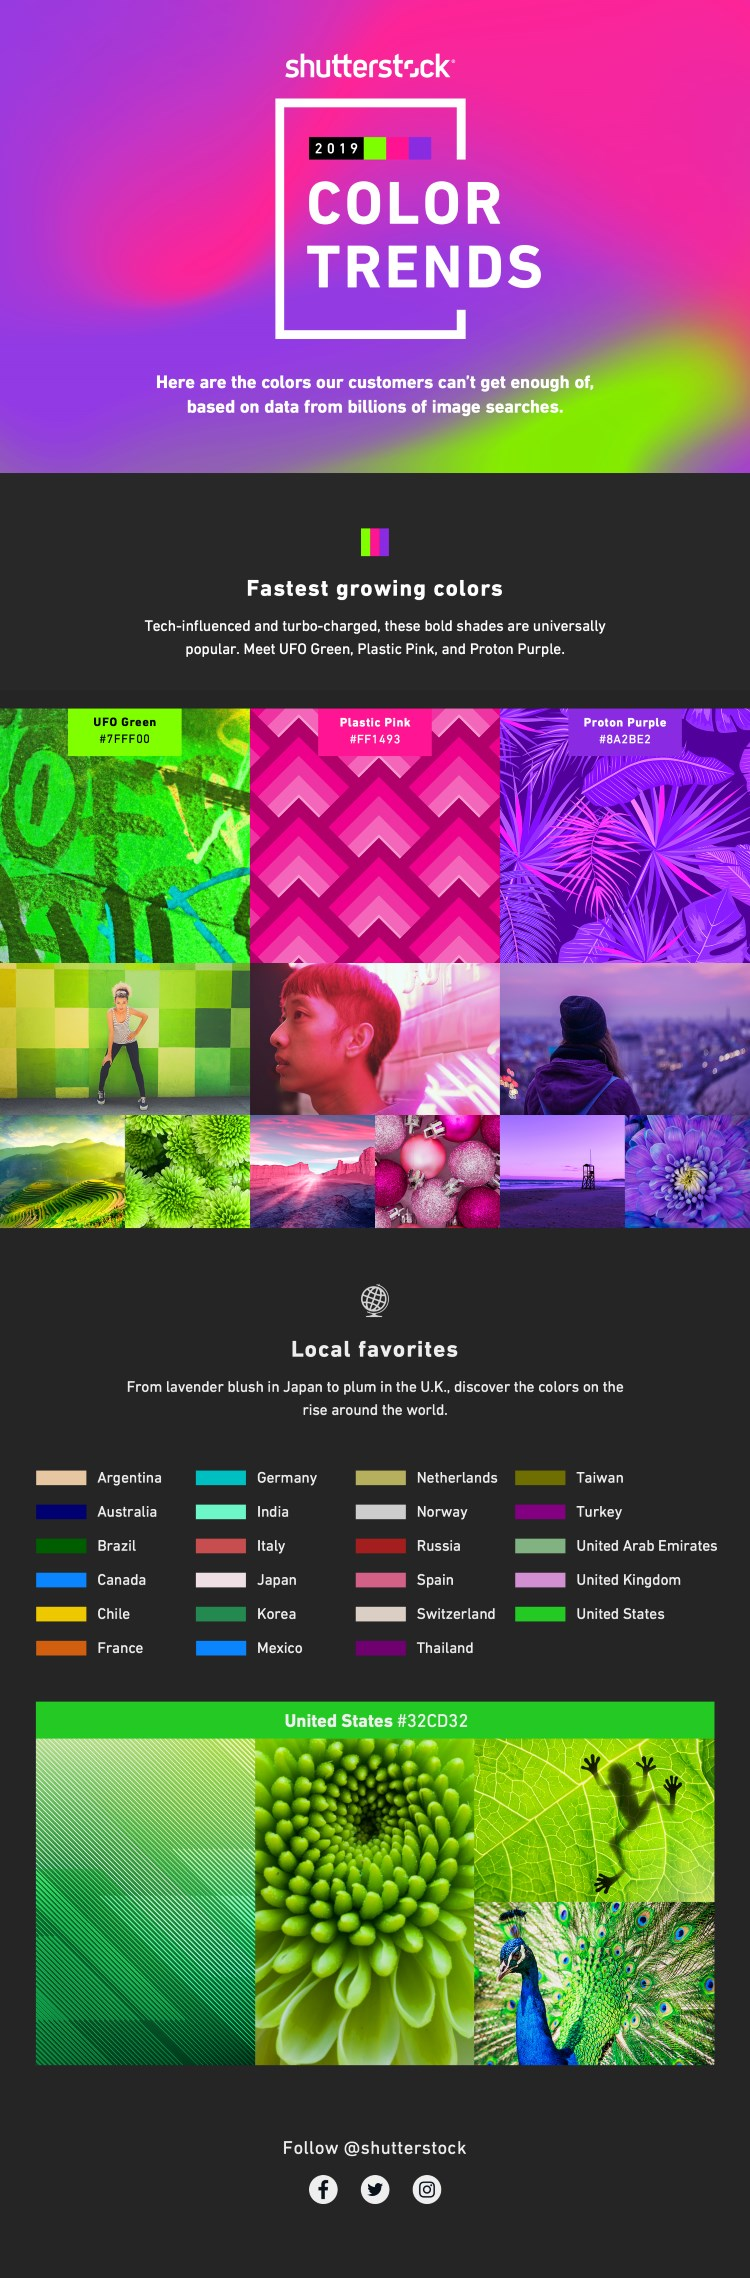 Br24 Blog Shutterstock Colour Trends 2019: Infographic about the colour trends 2019 with UFO Green, Plastic Pink, Proton Purple and local favourites